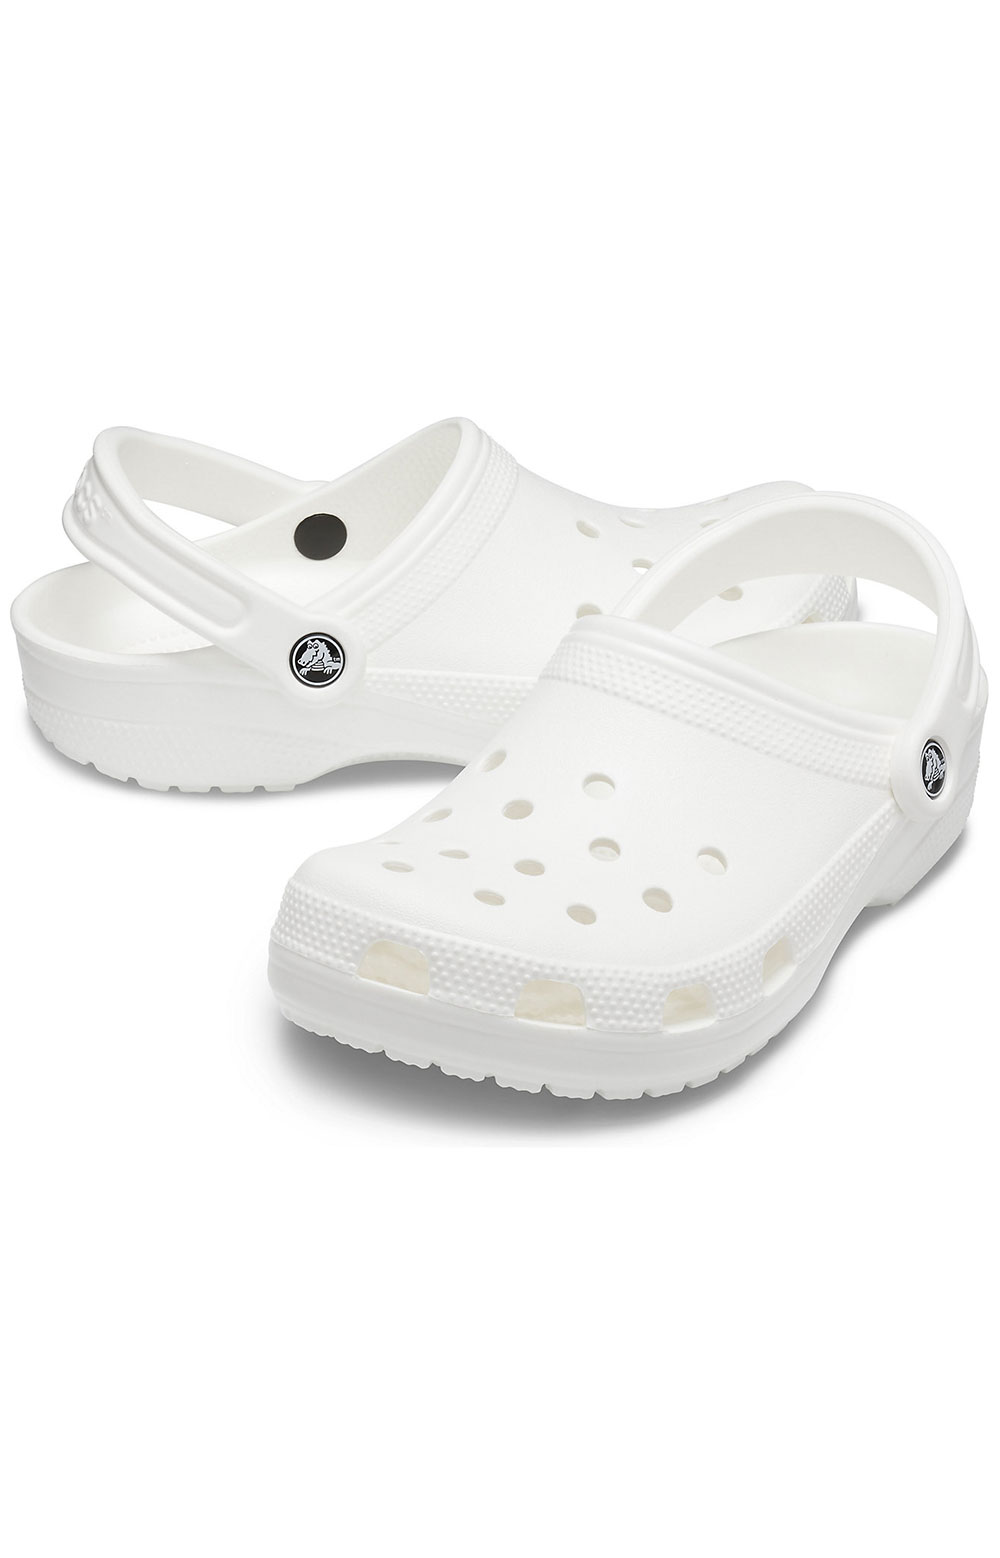 Classic Clogs - White 2